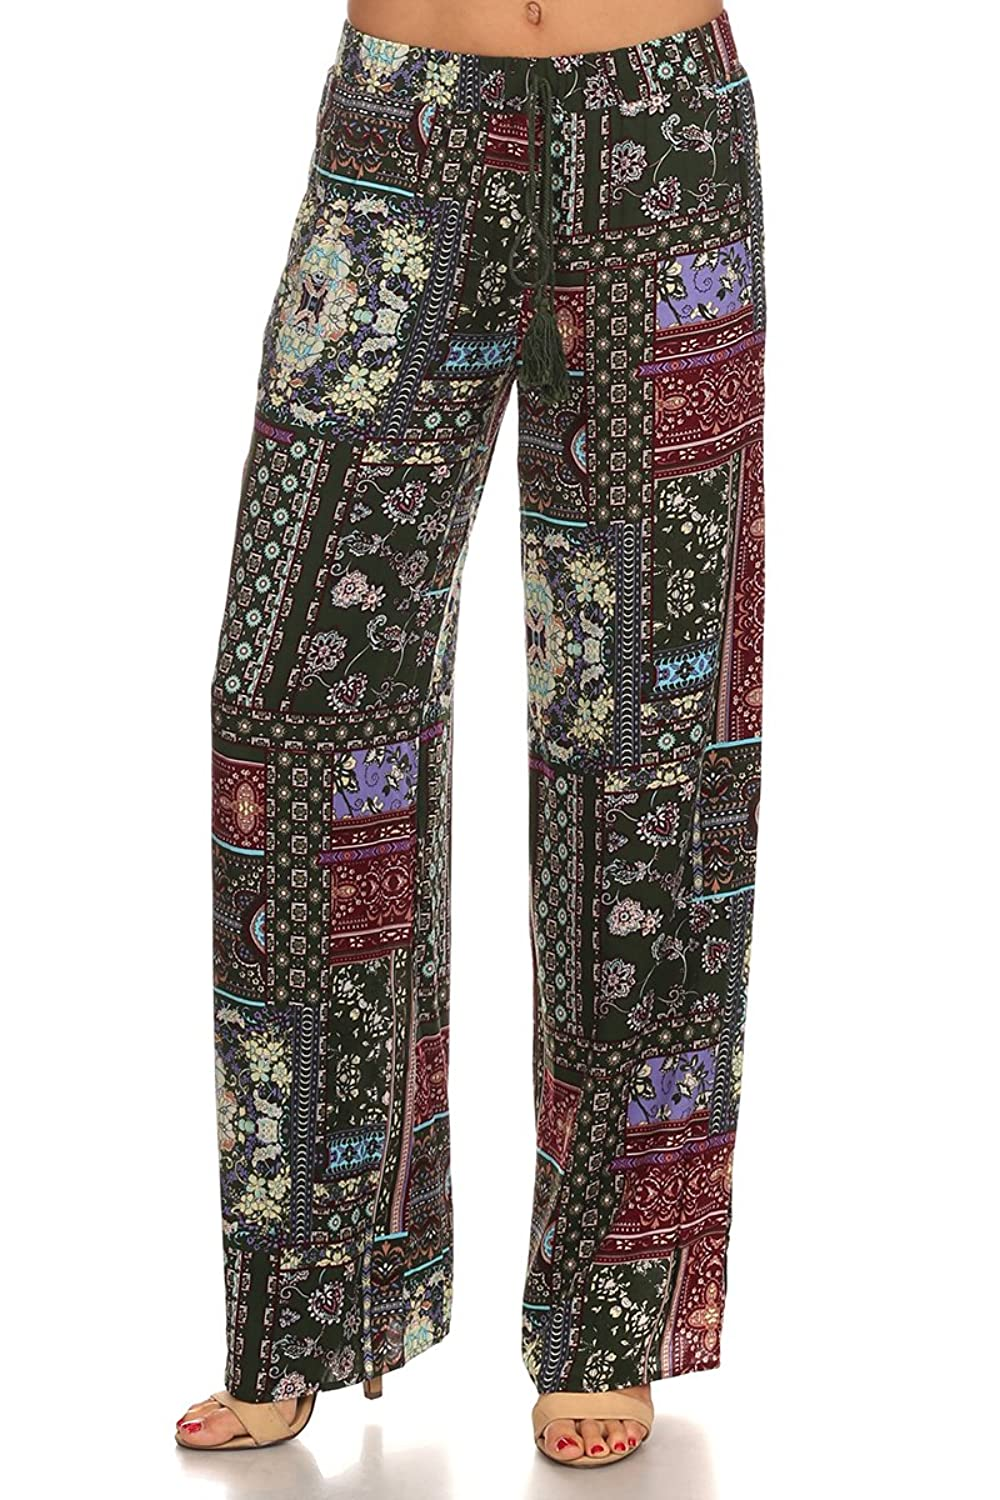 MeshMe Womens Sonya - Tribal Printed Palazzo Pants